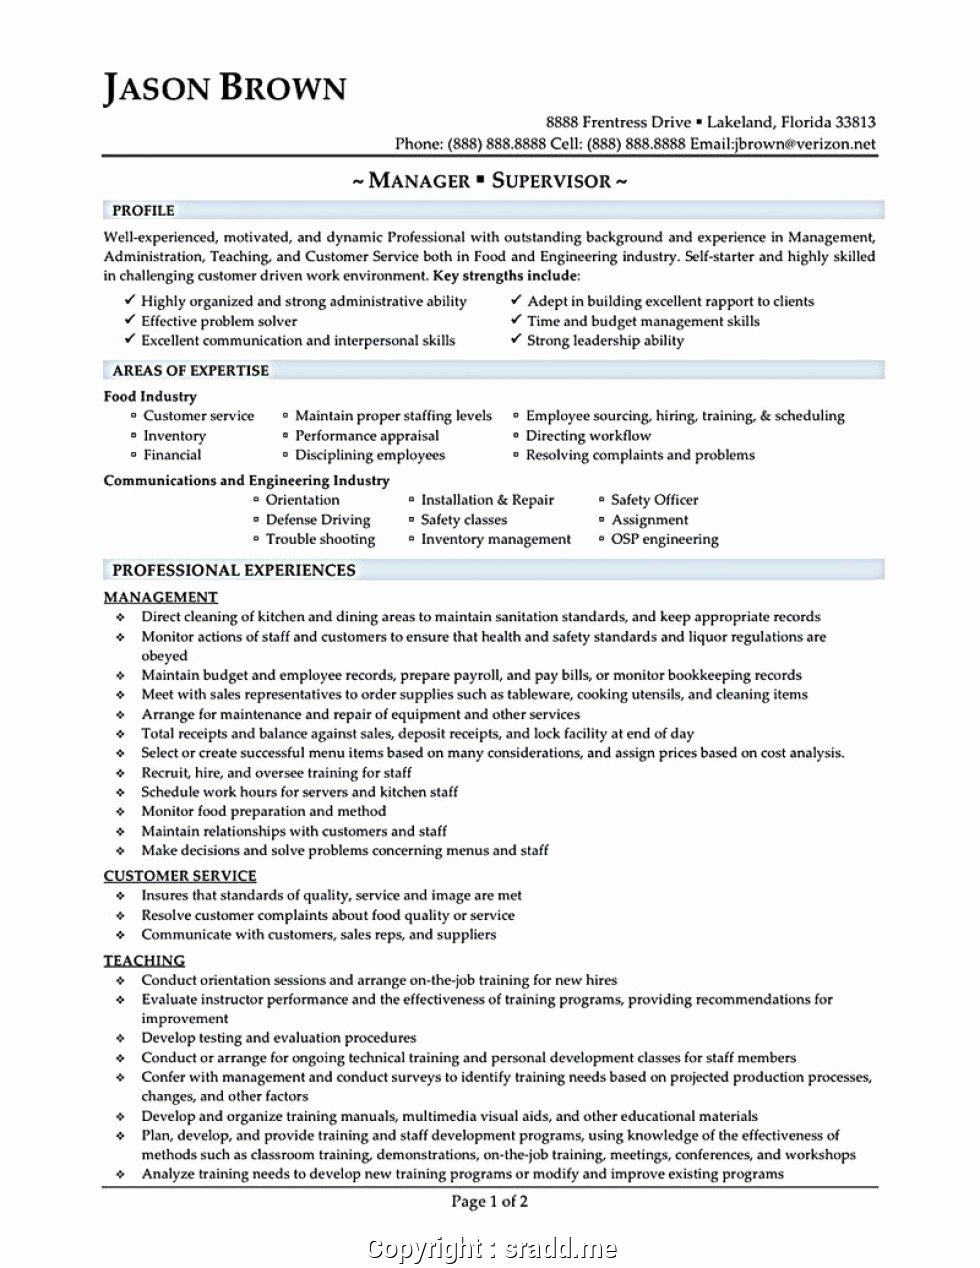 Professional Fast Food Restaurant Manager Resume Fast Food